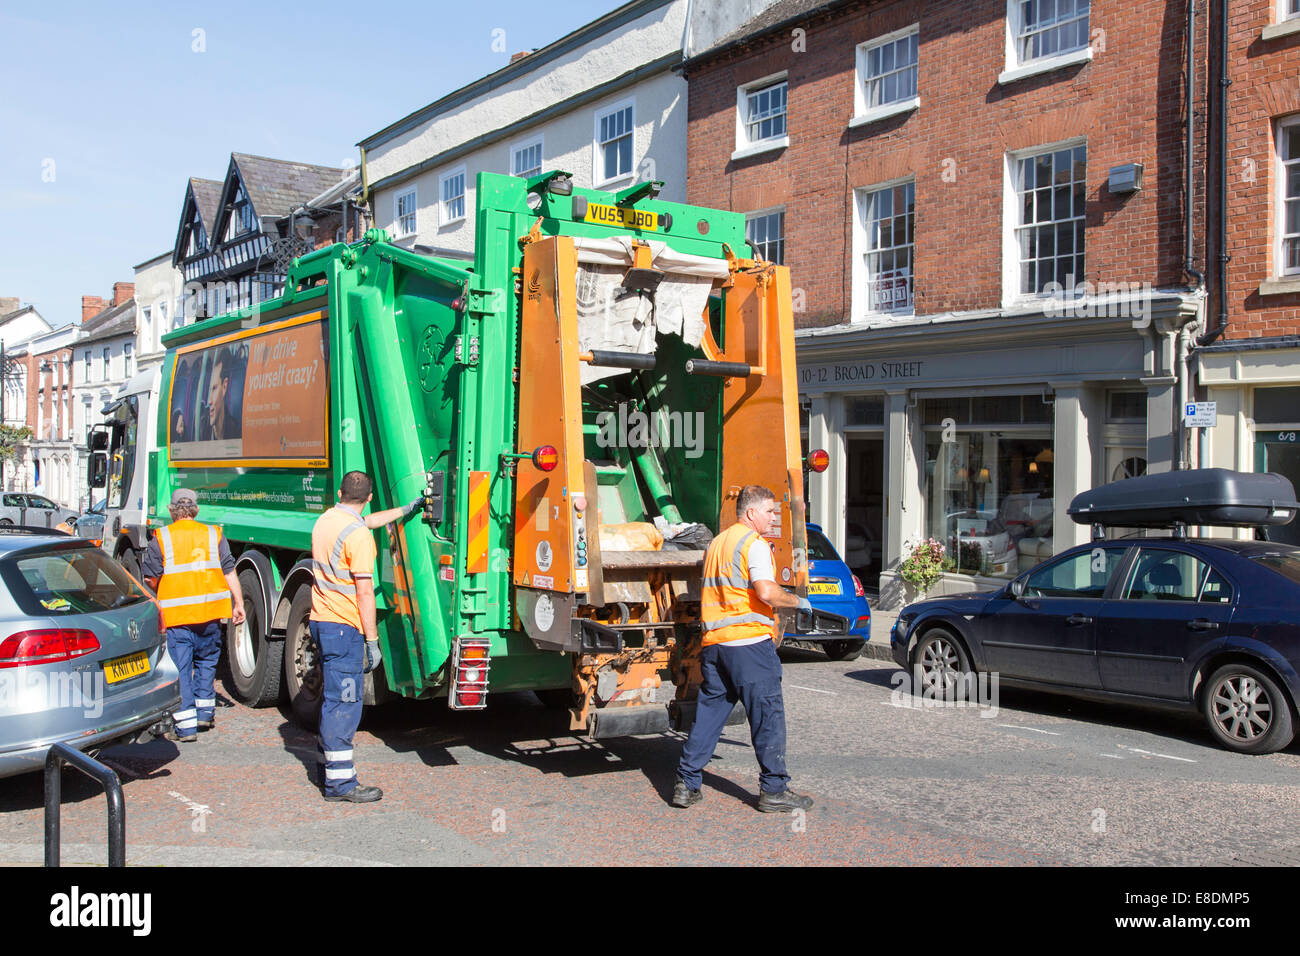 Refuse collectors in town center collection, England, UK - Stock Image